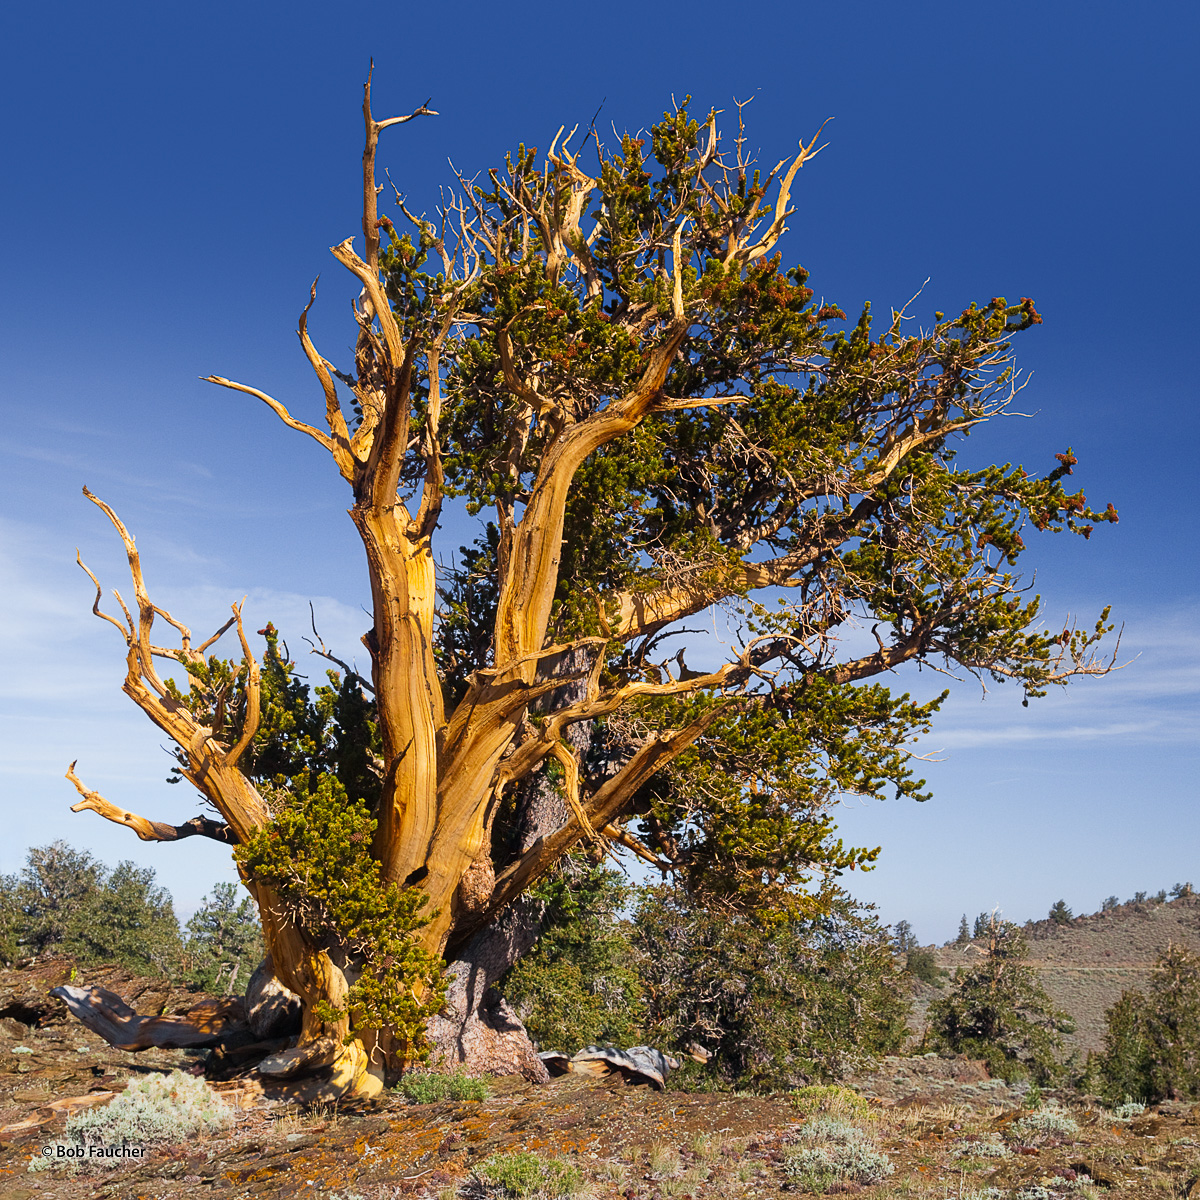 Maturing Bristlecone Pine stands on a ridge crest along the road to Patriarch Grove in the White Mountains of California